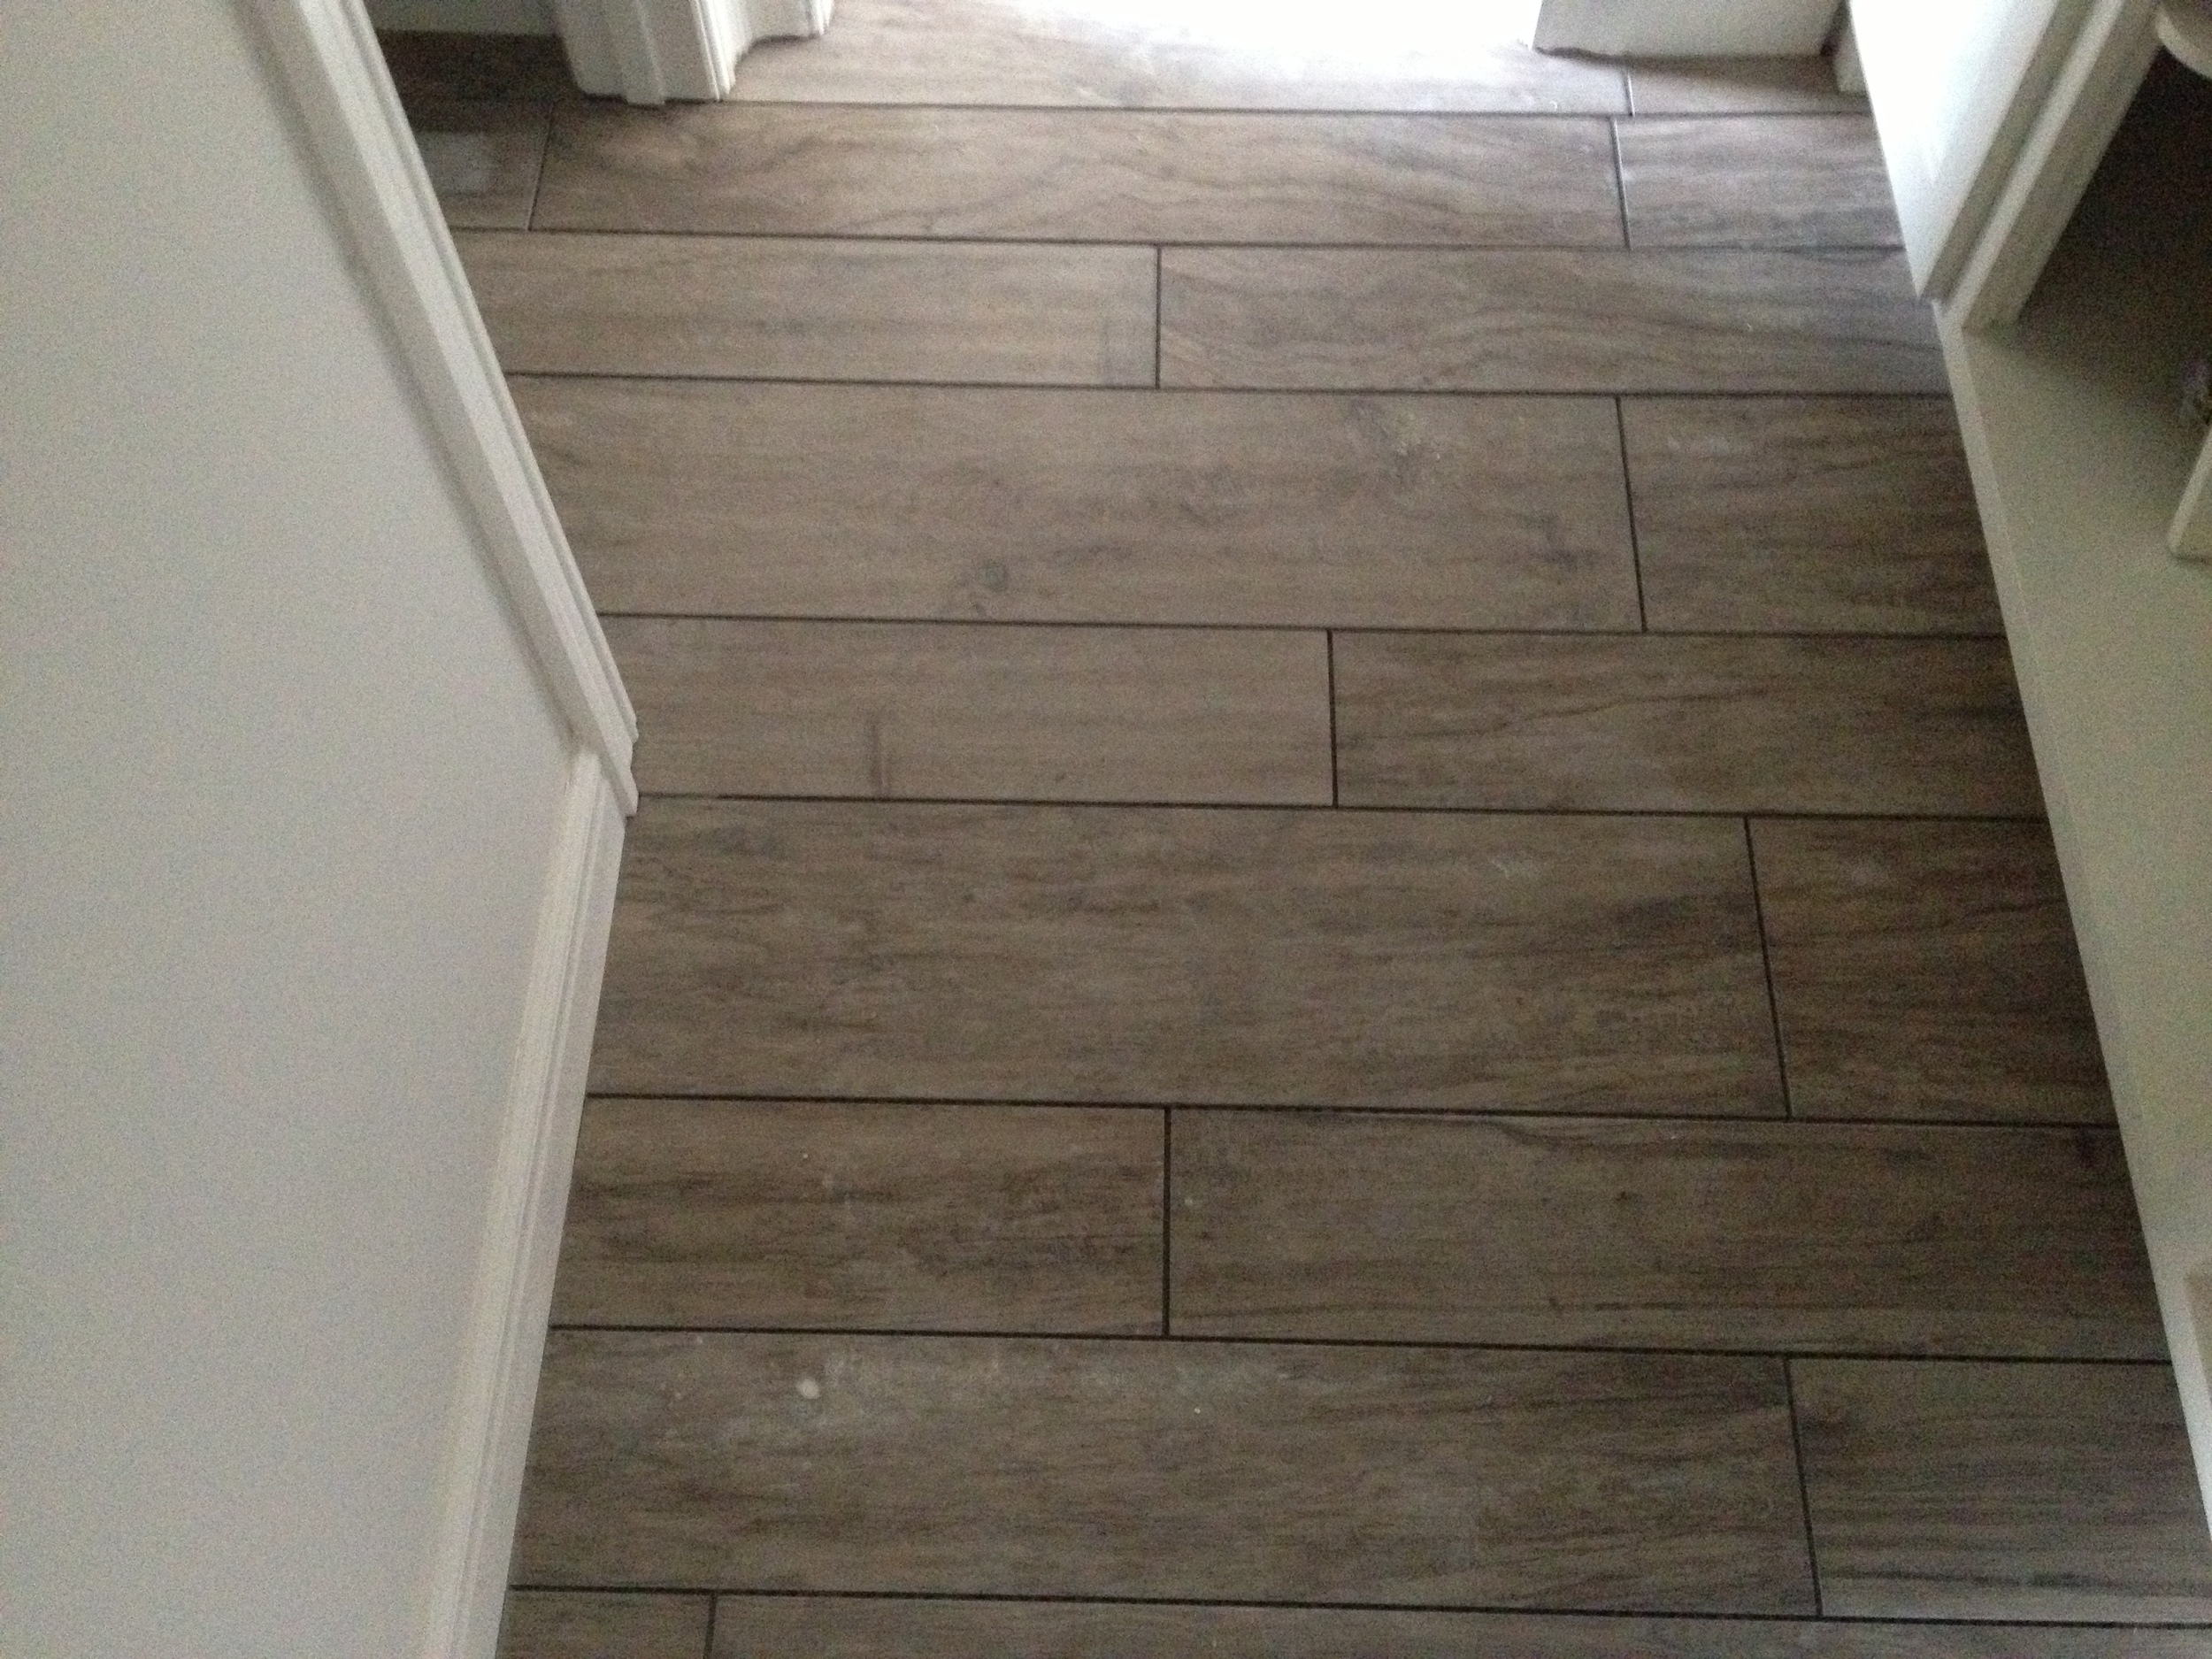 Laid, but no grout yet.